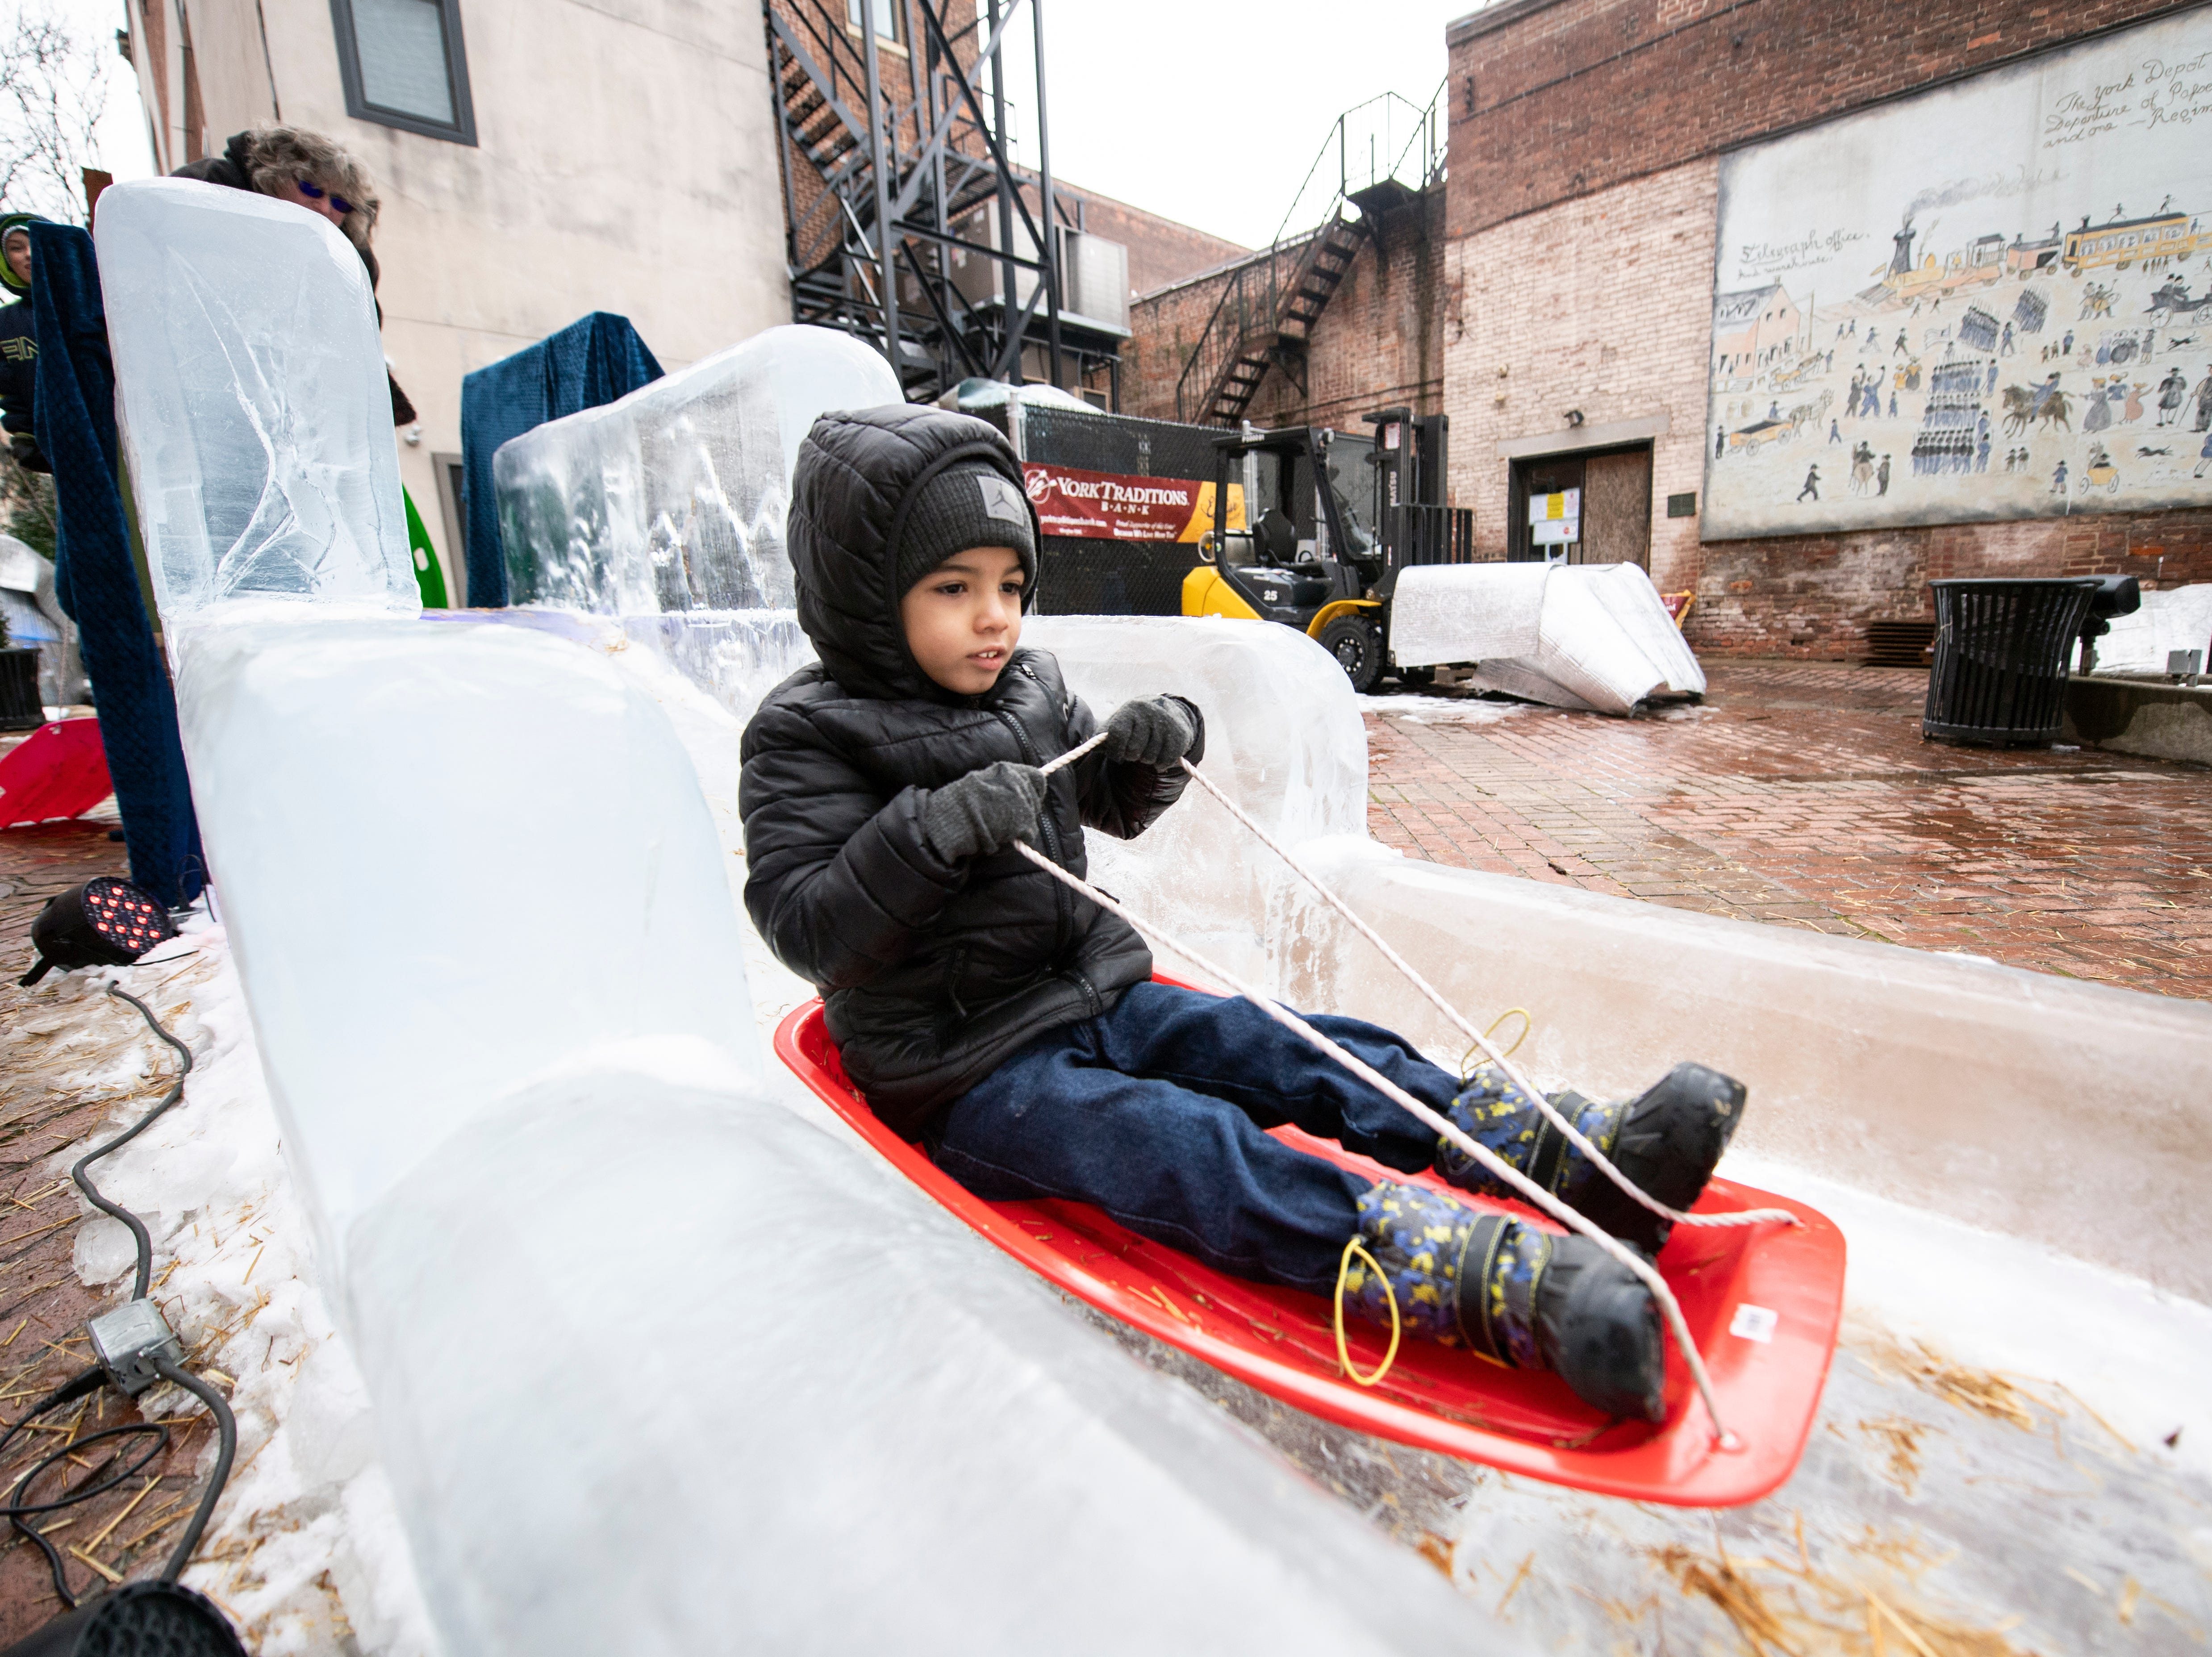 Jayvon Claw, 5, rides a sled down the 40-foot ice slide in Cherry Lane, downtown, Friday, Jan. 18, 2019. The FestivICE ice festival has interactive ice sculptures, an ice slide and more. The three-day event ends Saturday.